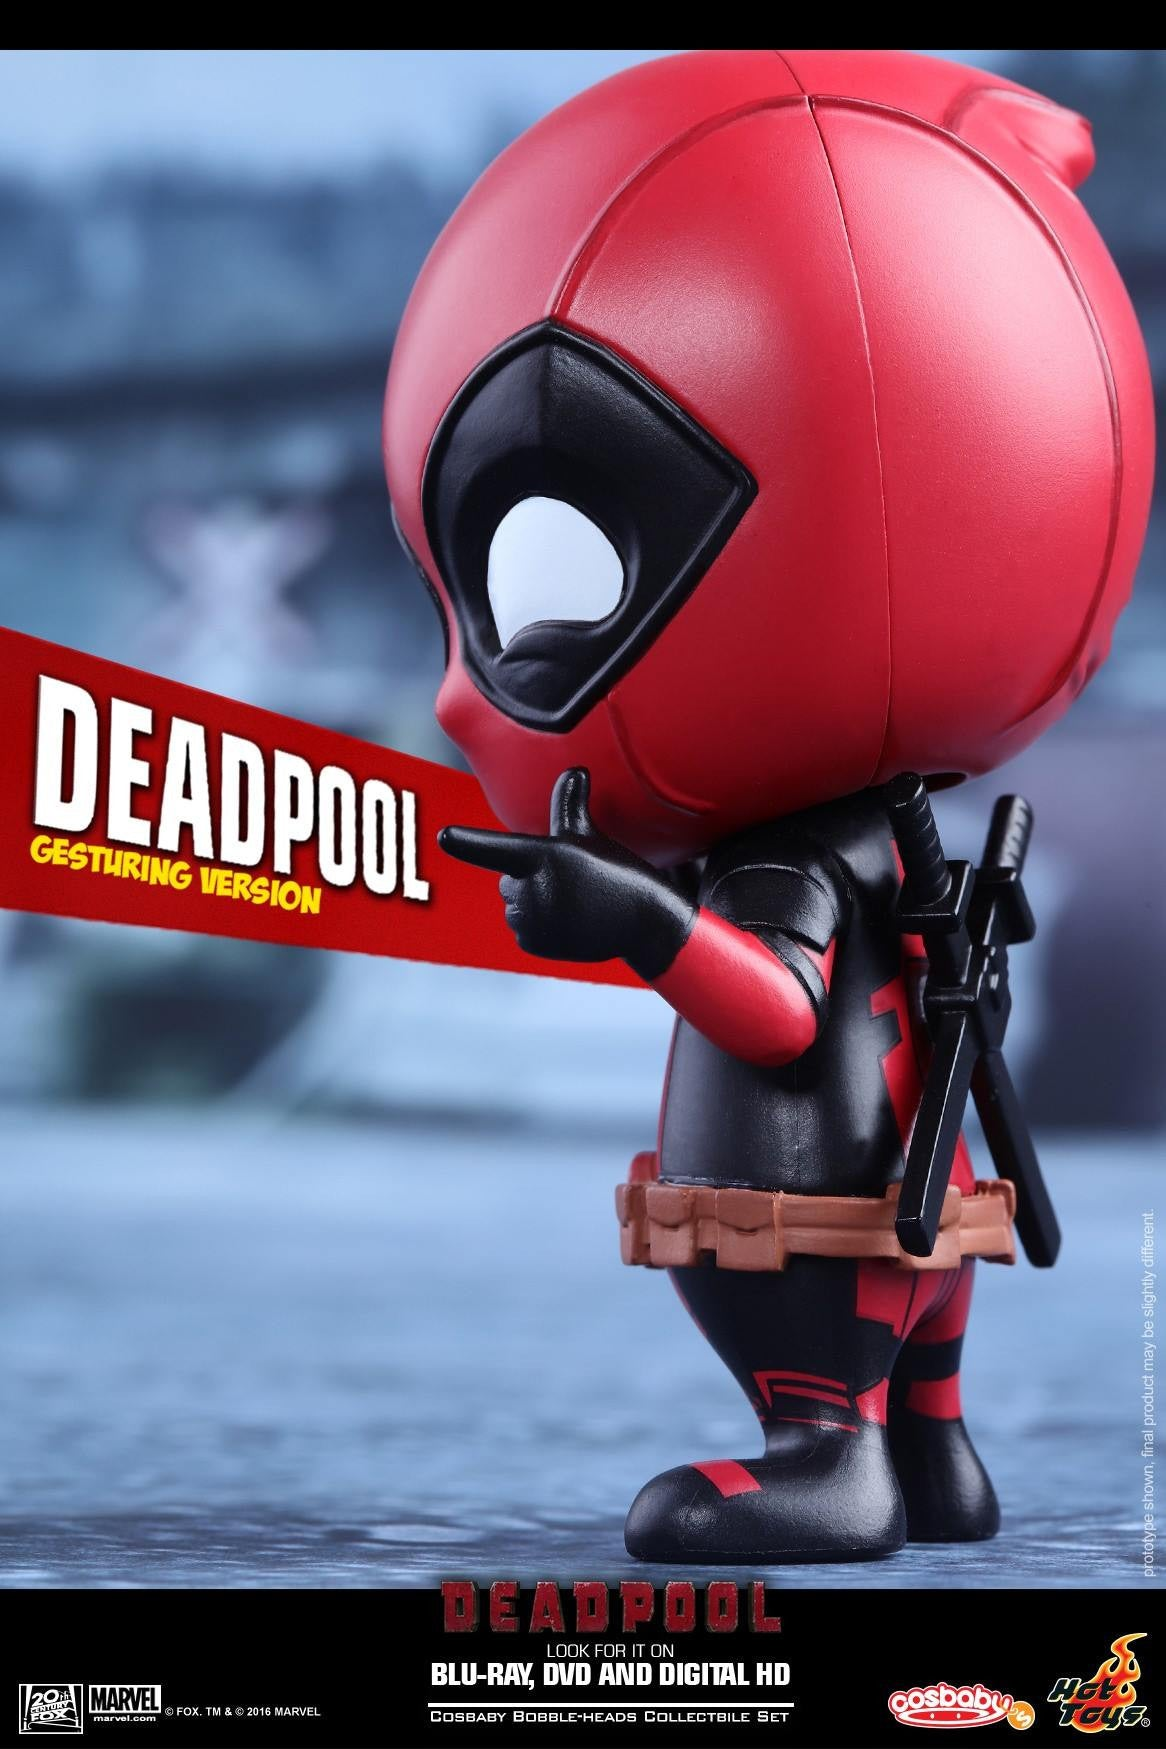 Hot Toys - COSB221 - Deadpool (Gesturing Version) Cosbaby Bobble-Head - Marvelous Toys - 3